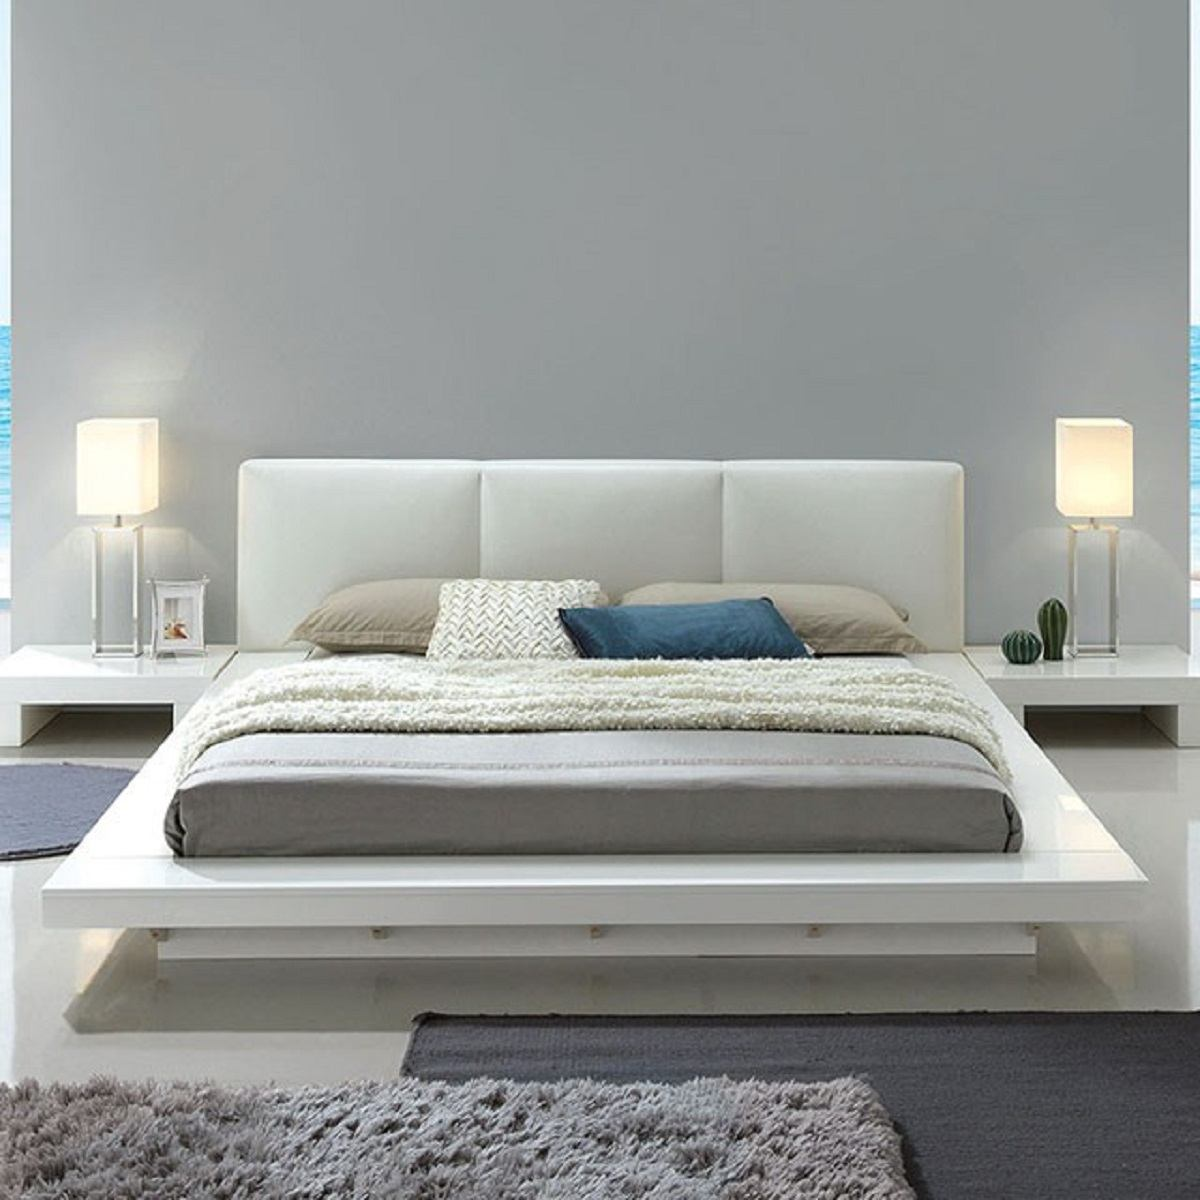 Furniture Of America Christie California King Platform Bed In White Cm7550ck